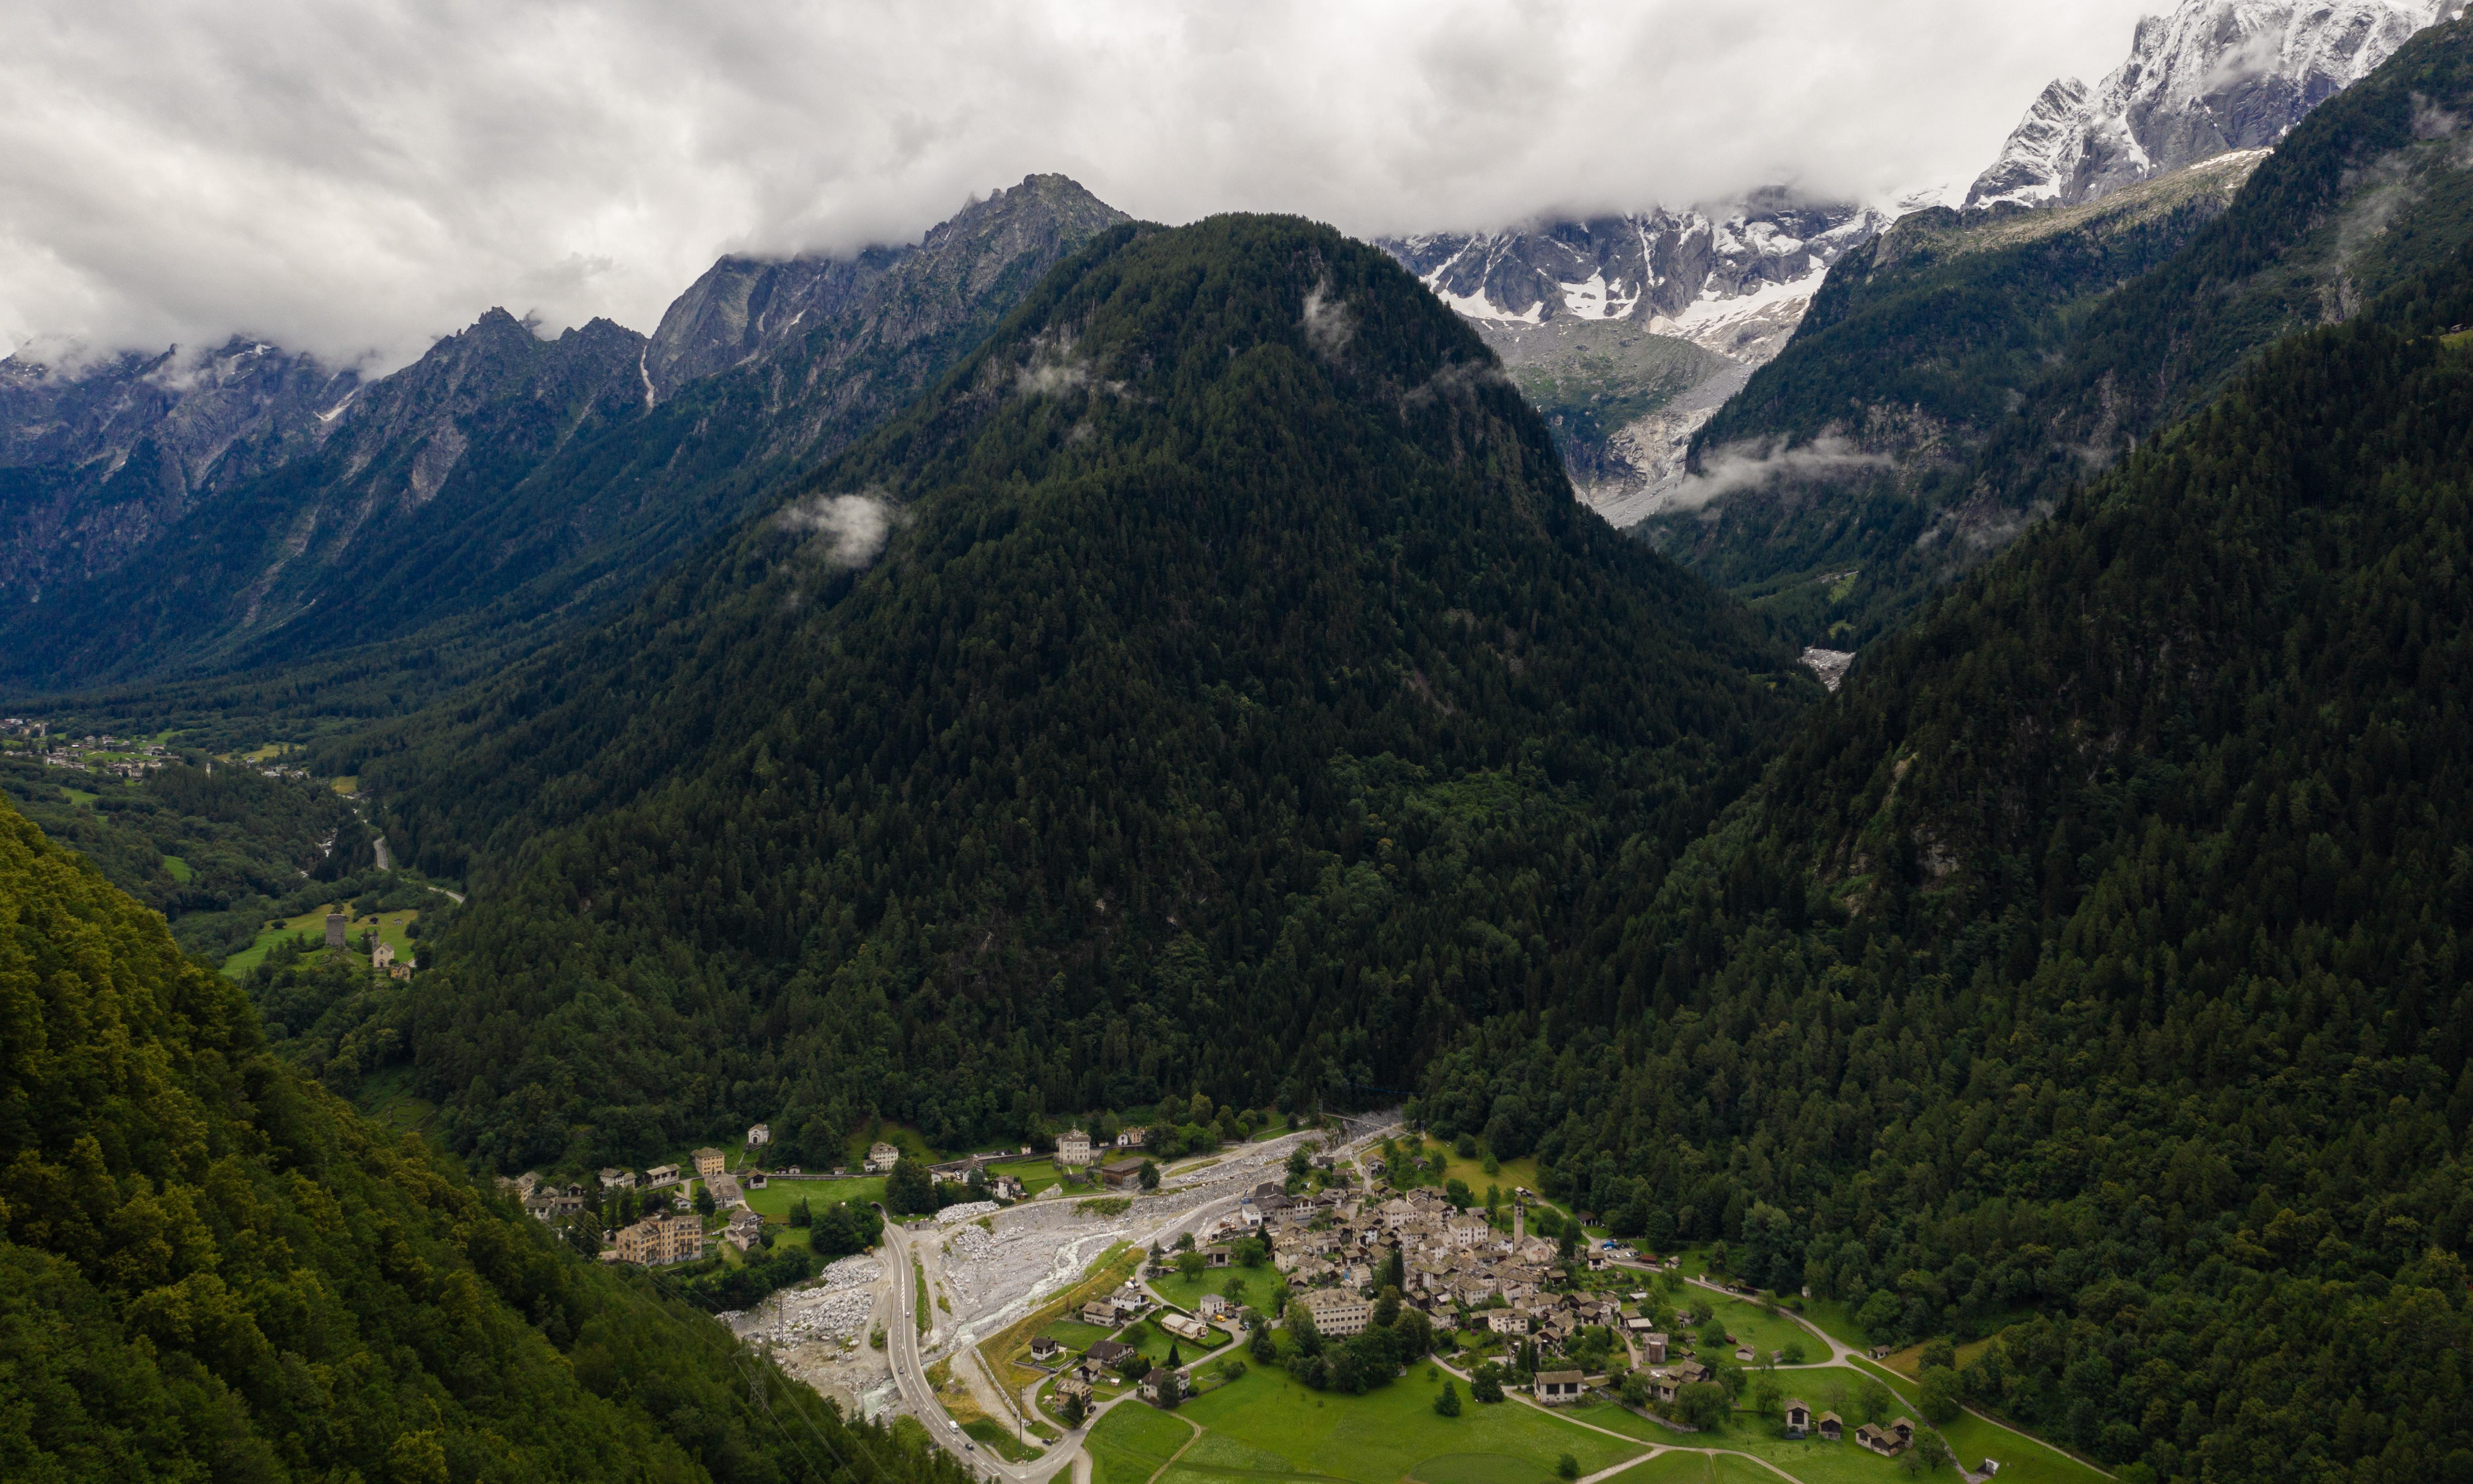 'Things are getting unstable': global heating and the rise of rockfalls in Swiss Alps